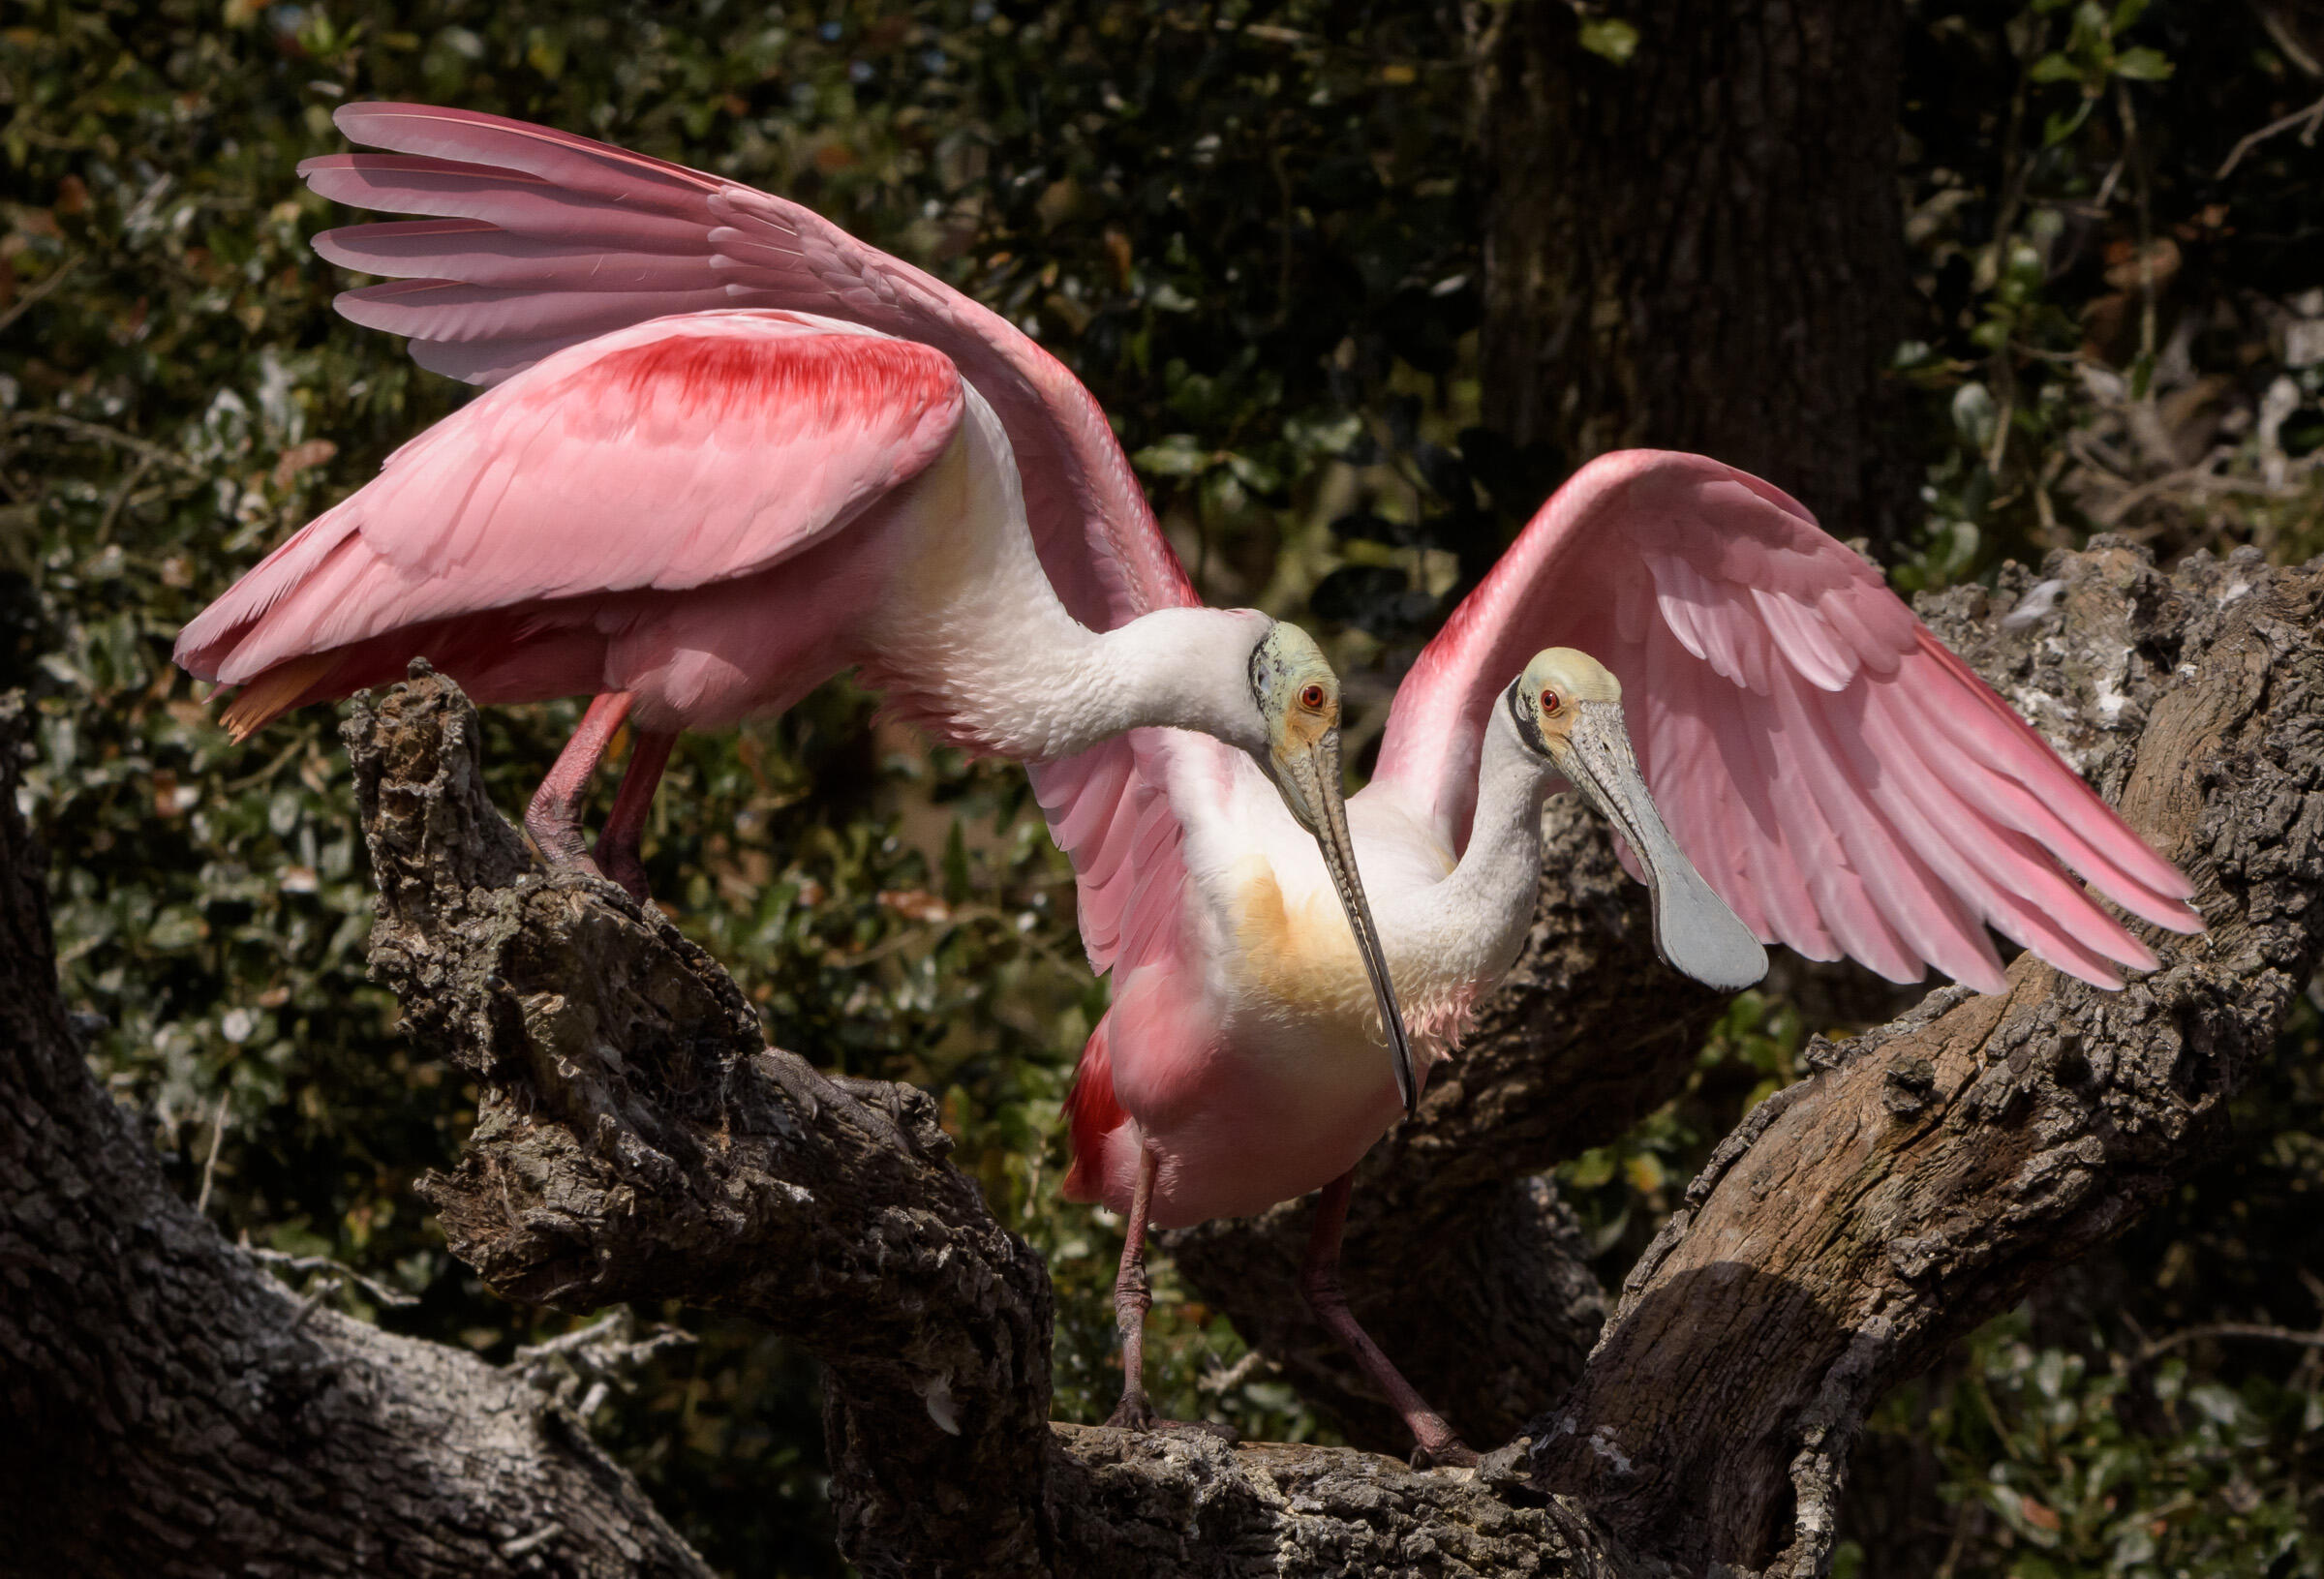 Roseate Spoonbill. Photo: Trudy Walden/Audubon Photography Awards.